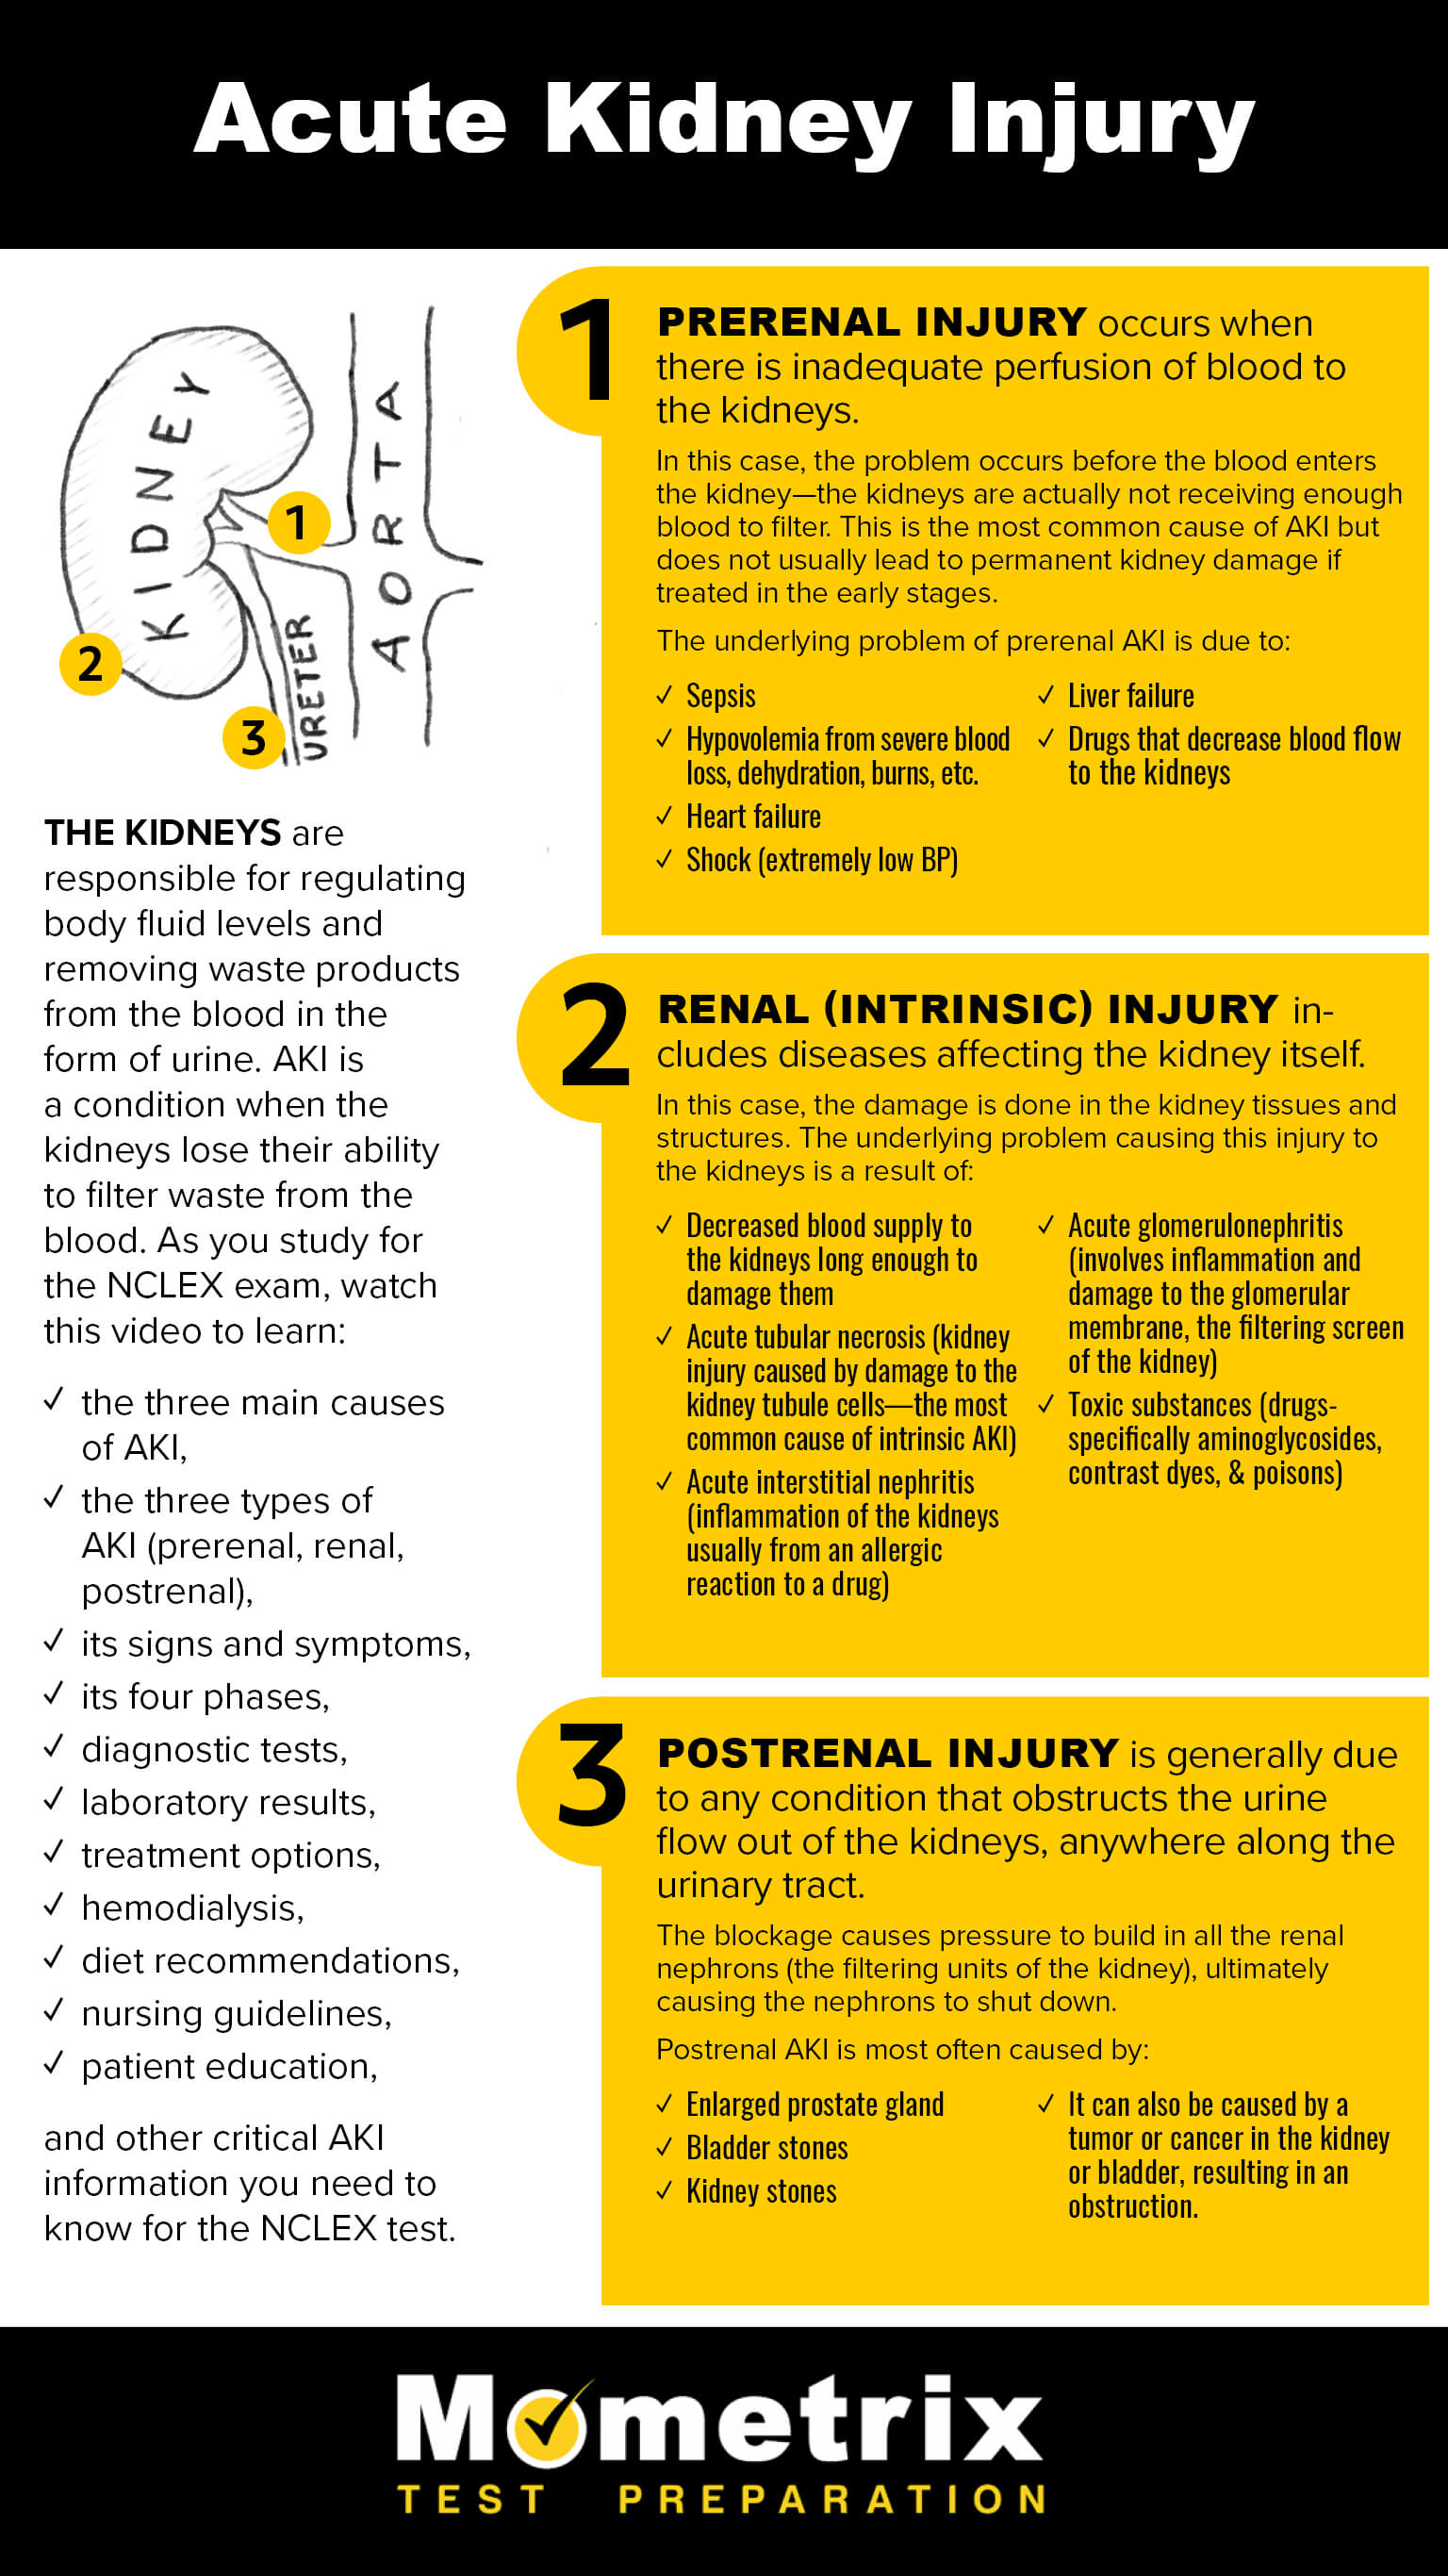 Infographic on Acute Kidney Injury